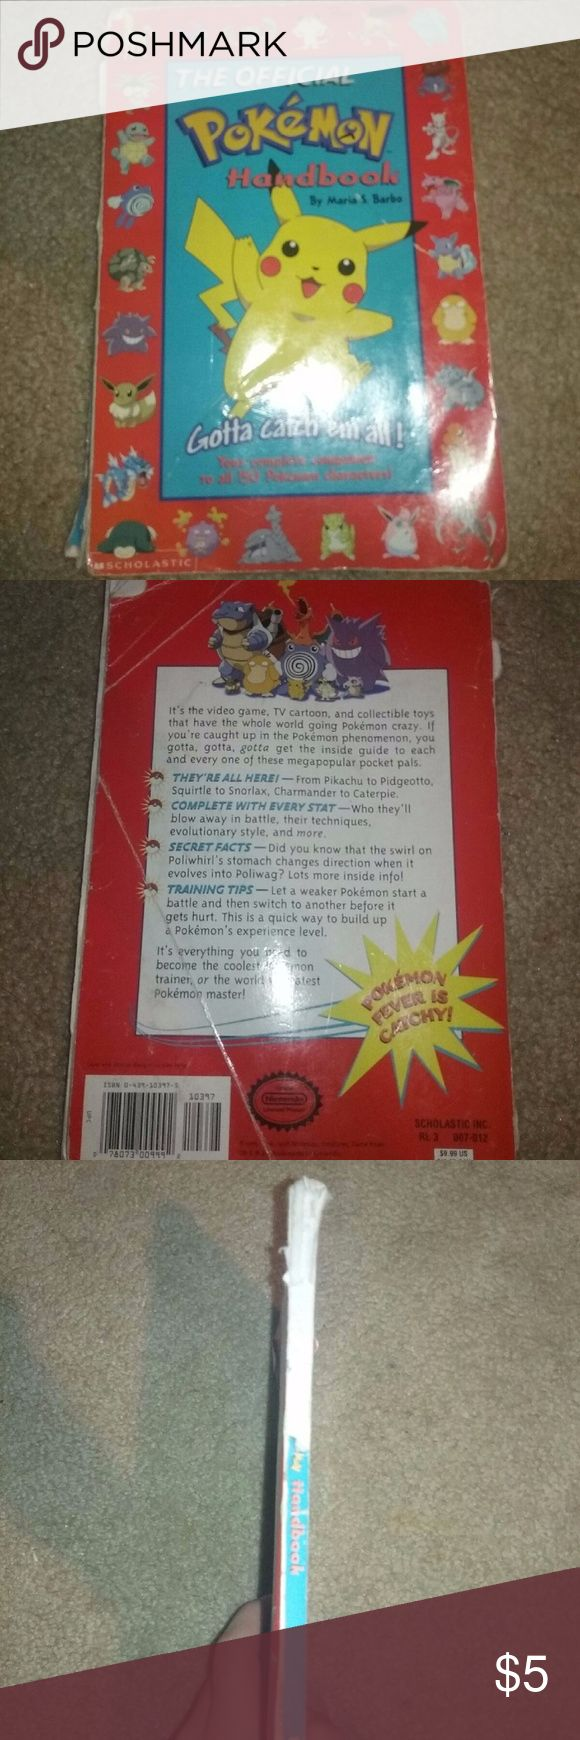 *VINTAGE* Official Pokemon Handbook! 151 Pokemon! Old school pokemon handbook! In poor condition but all the pages are present! Book is beat up a bit :( Pokemon Accessories Belts